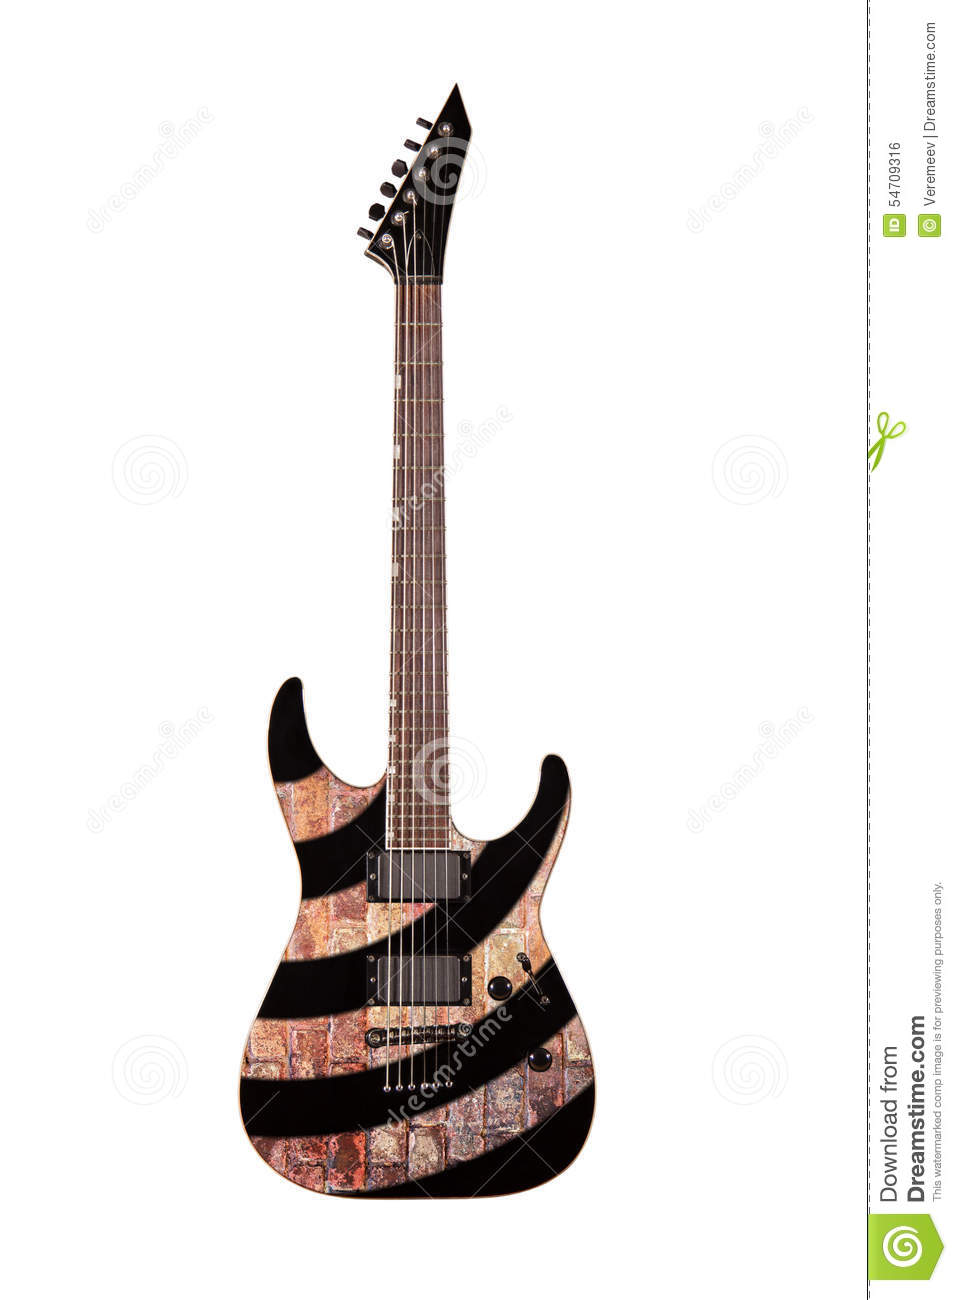 black electric guitar isolated on white background stock photo image 54709316. Black Bedroom Furniture Sets. Home Design Ideas